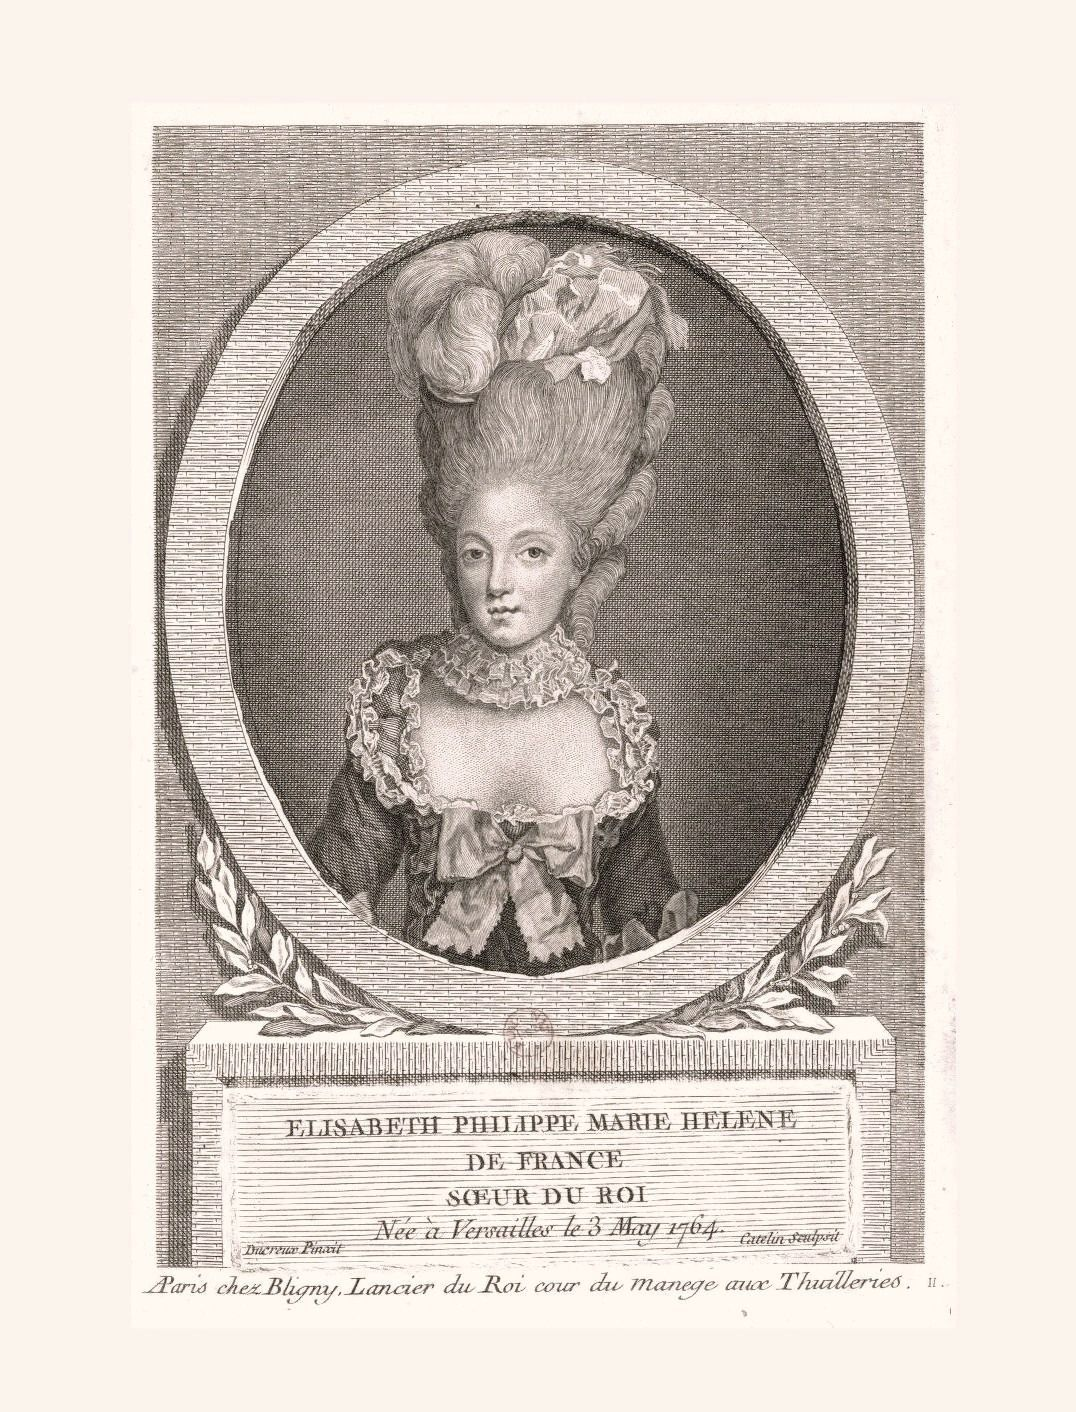 """Cathelin et Ducreux, """"Elisabeth de France, soeur du roi"""". Paris, musée Carnavalet. Élisabeth Philippine Marie Hélène de France, called Madame Elizabeth, was born May 3, 1764 at Versailles. Sister to Louis XVI, orphaned at the age of three, she received an excellent education and was distinguished by her talents in mathematics and science.  In 1783, Louis XVI gave her land and a house in the village of Montreuil, that remains today in the district of Montreuil at Versailles under ..."""